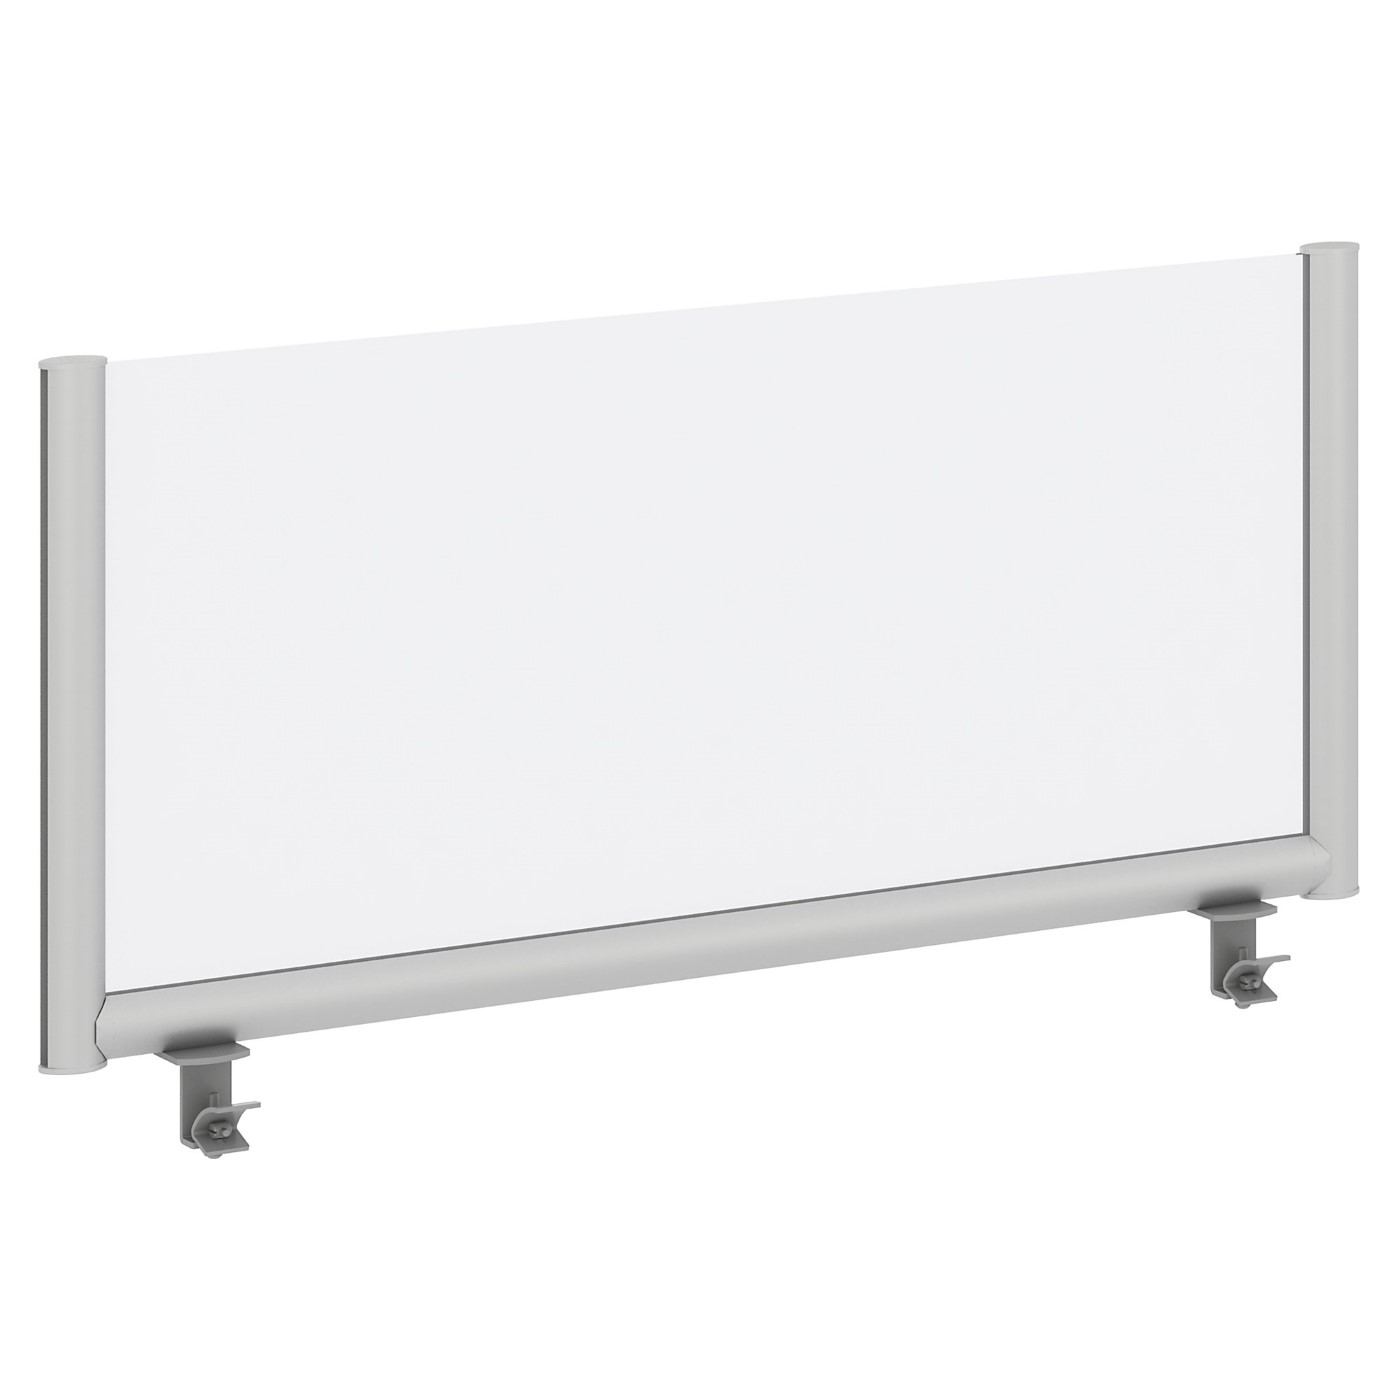 BUSH BUSINESS FURNITURE 42W DESK DIVIDER PRIVACY PANEL. FREE SHIPPING SALE DEDUCT 10% MORE ENTER '10percent' IN COUPON CODE BOX WHILE CHECKING OUT. ENDS 5-31-20.